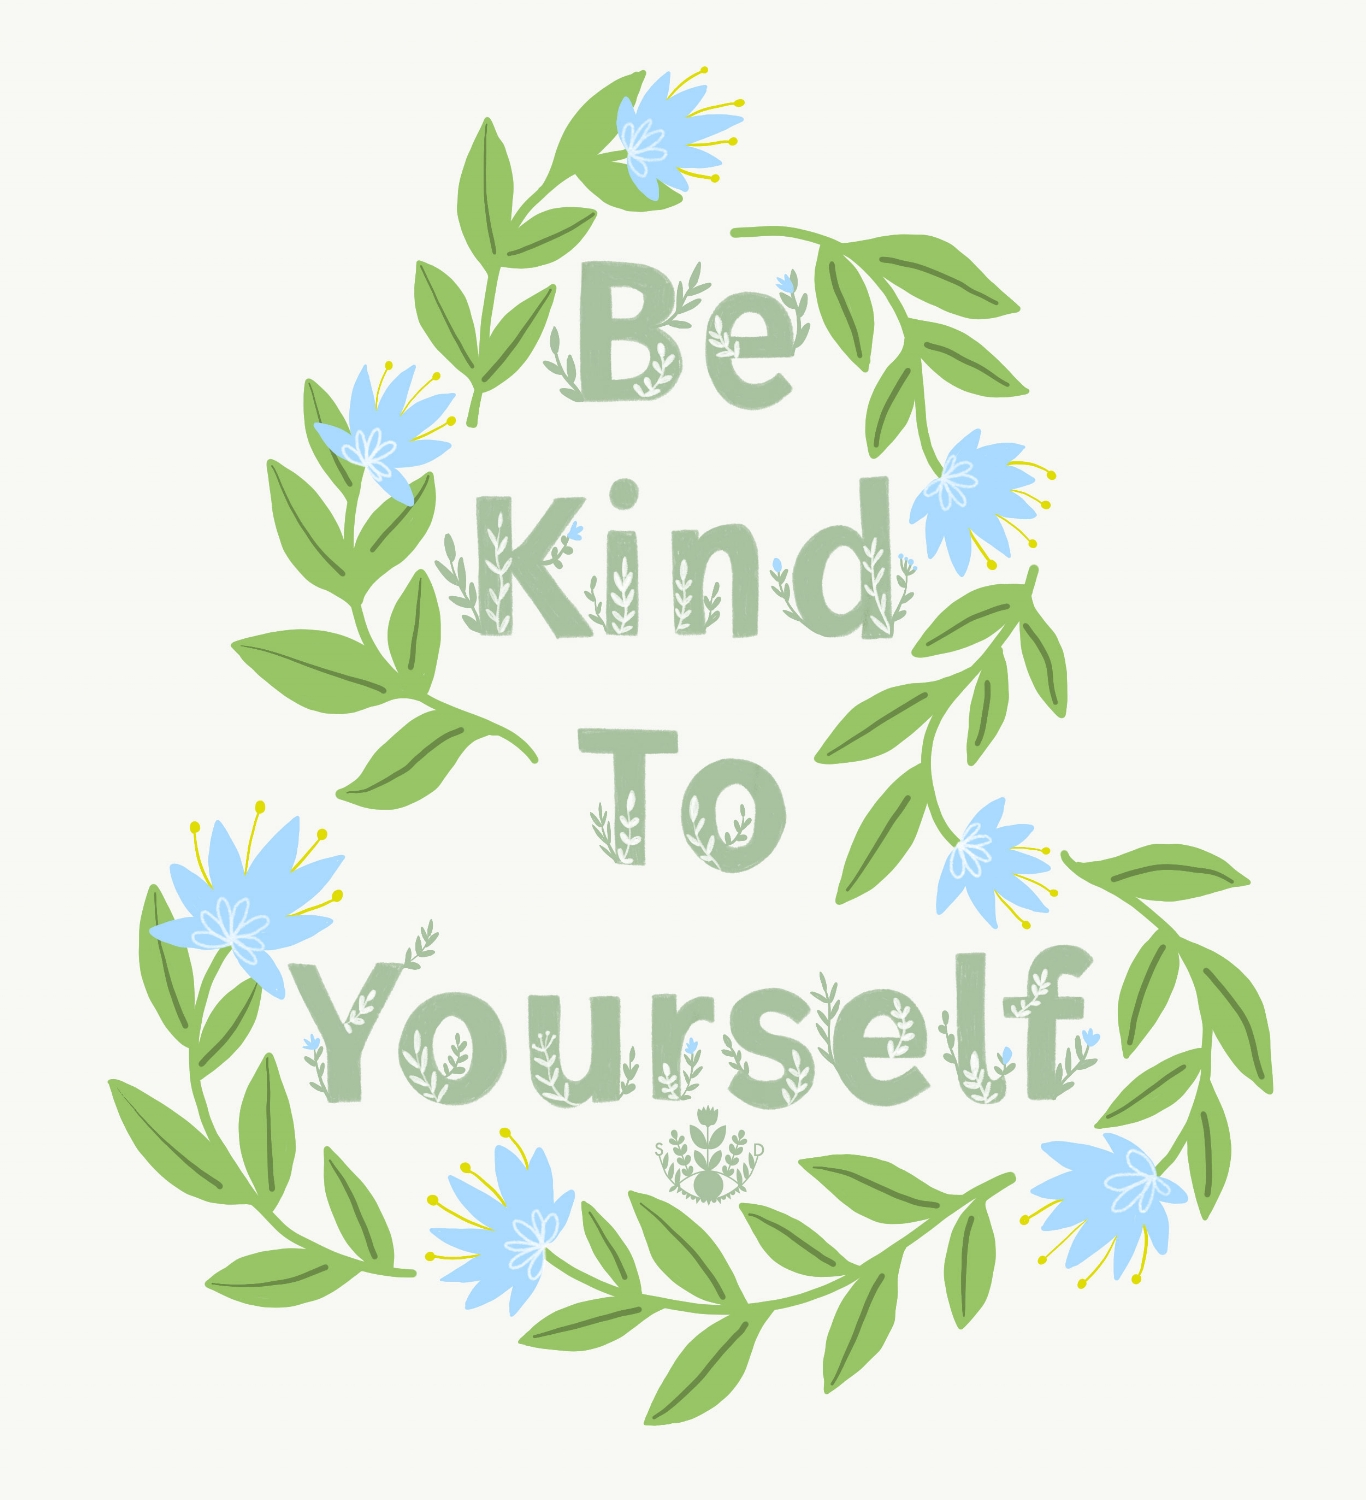 be-kind-to-yourself-by-samanthadolan.jpg